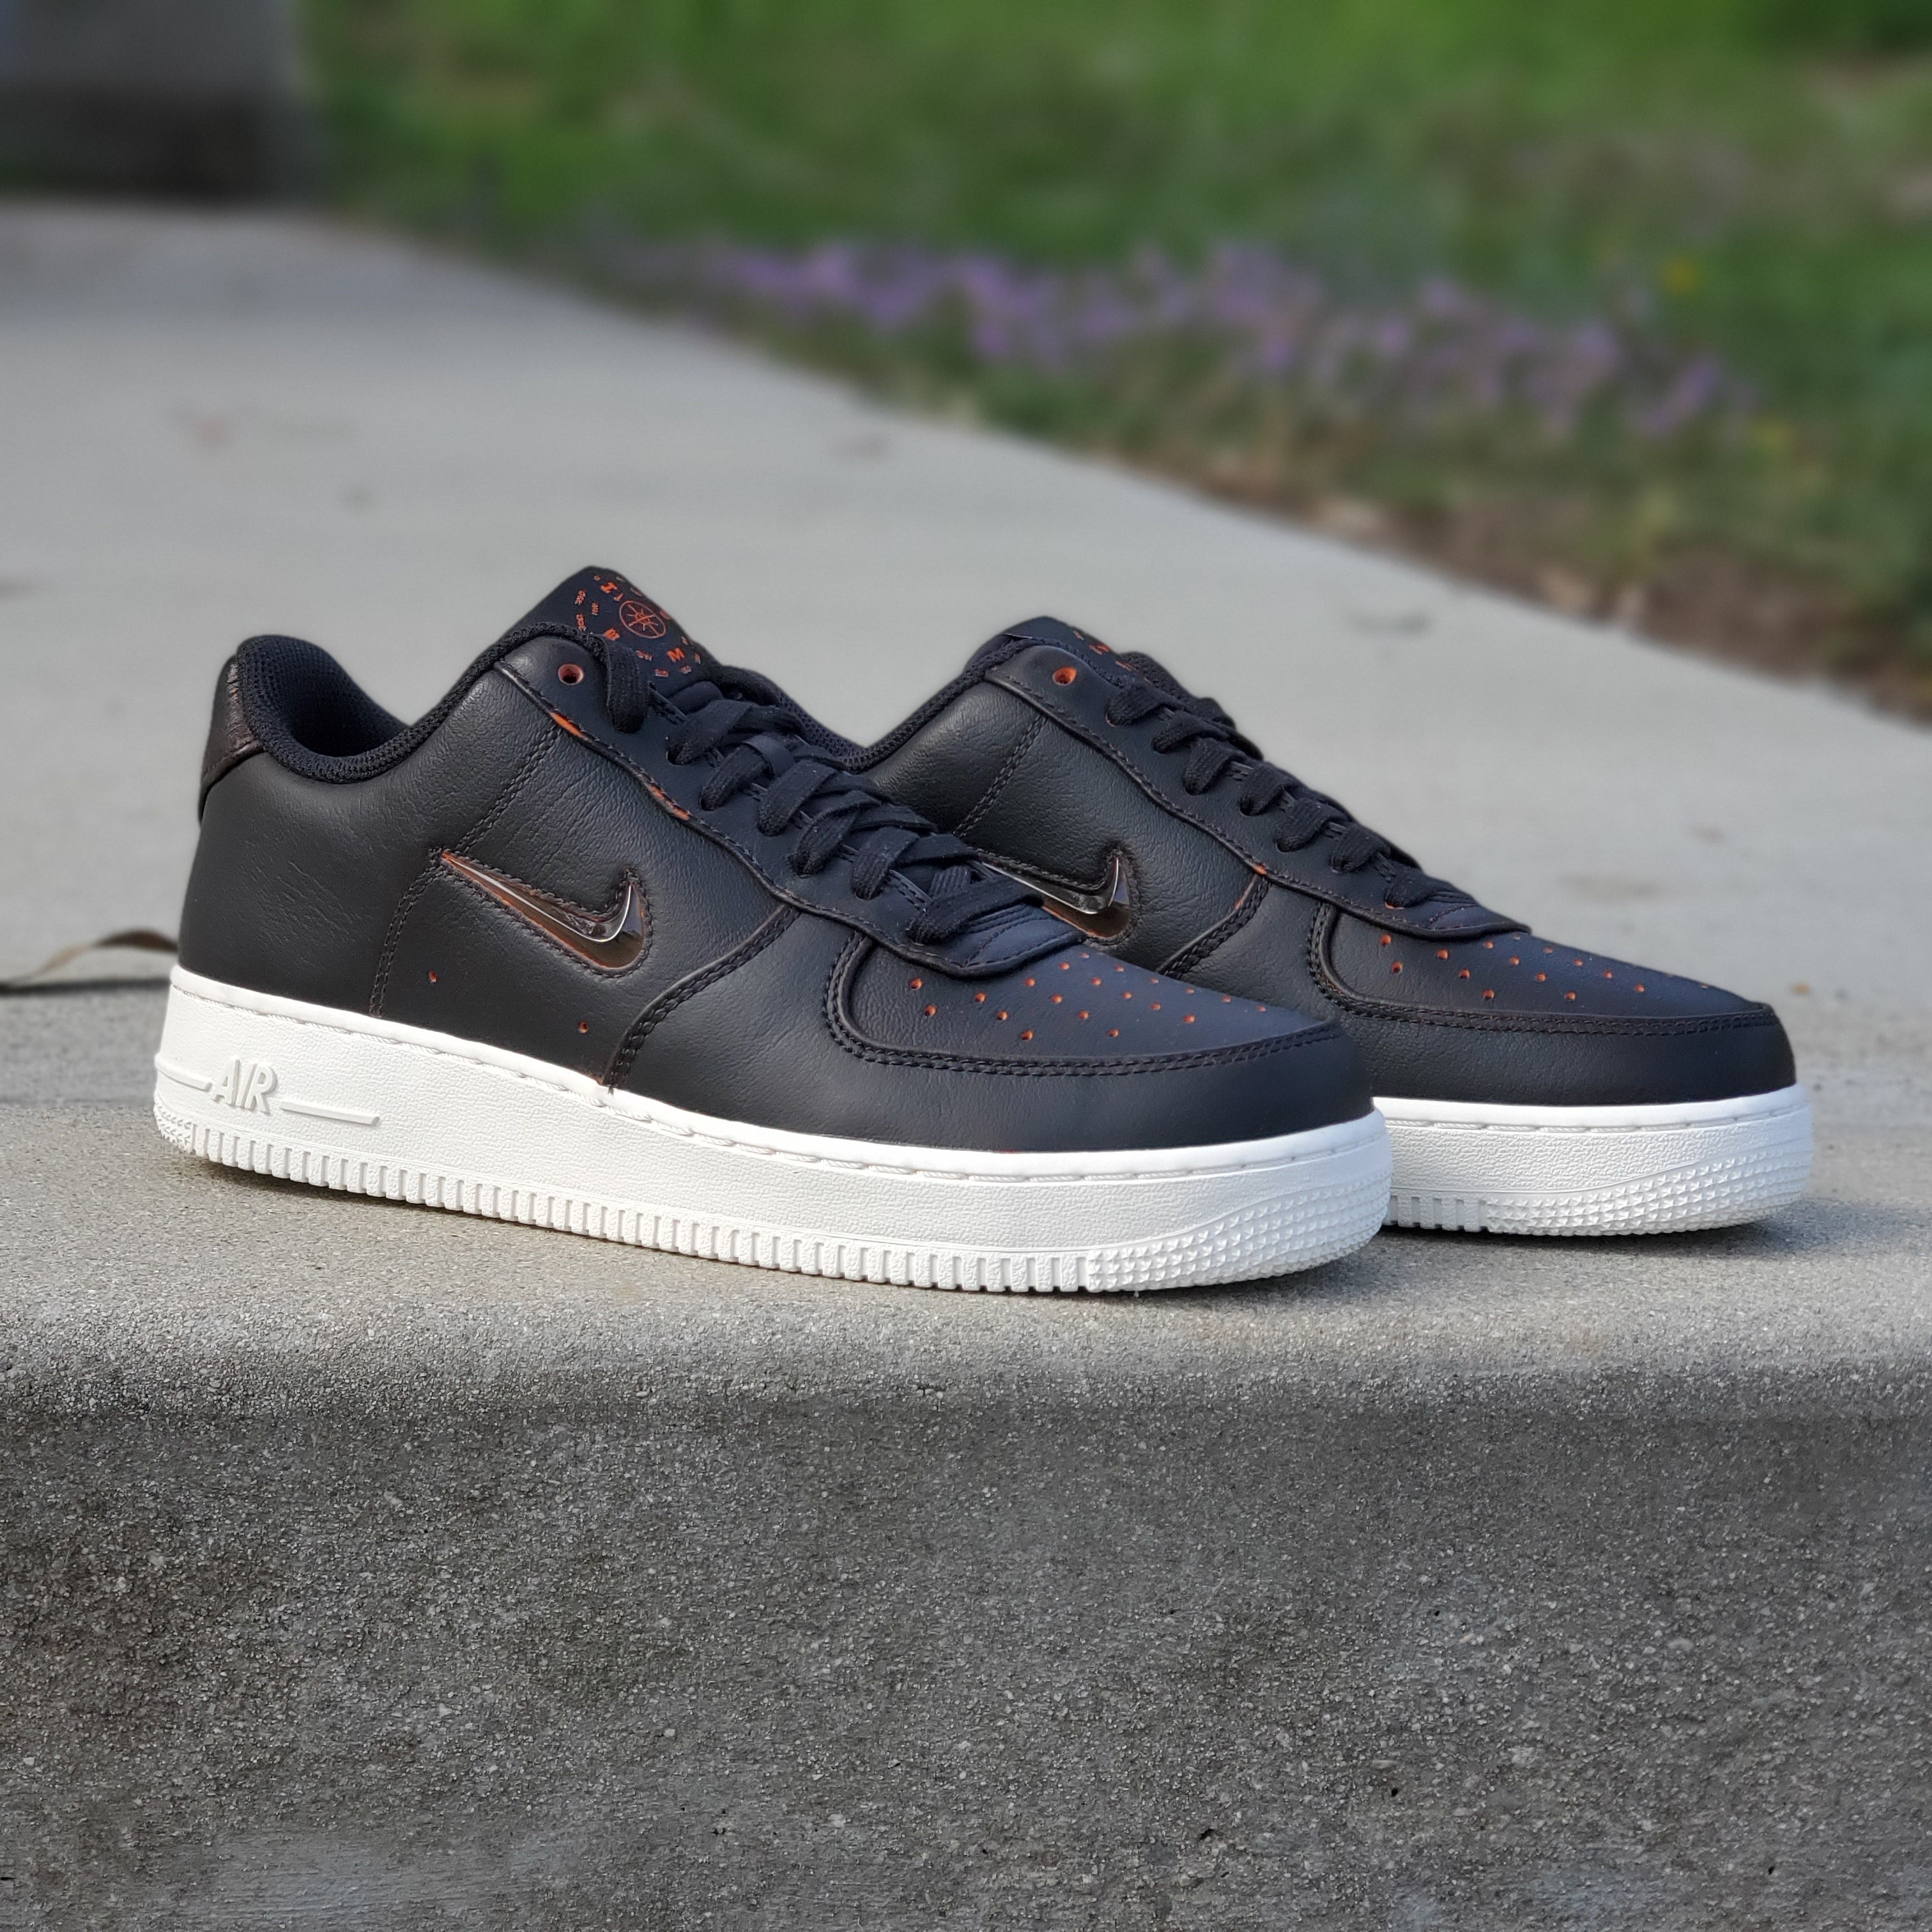 NIKE AIR FORCE 1 '07 PRM JEWEL HOME AND AWAY